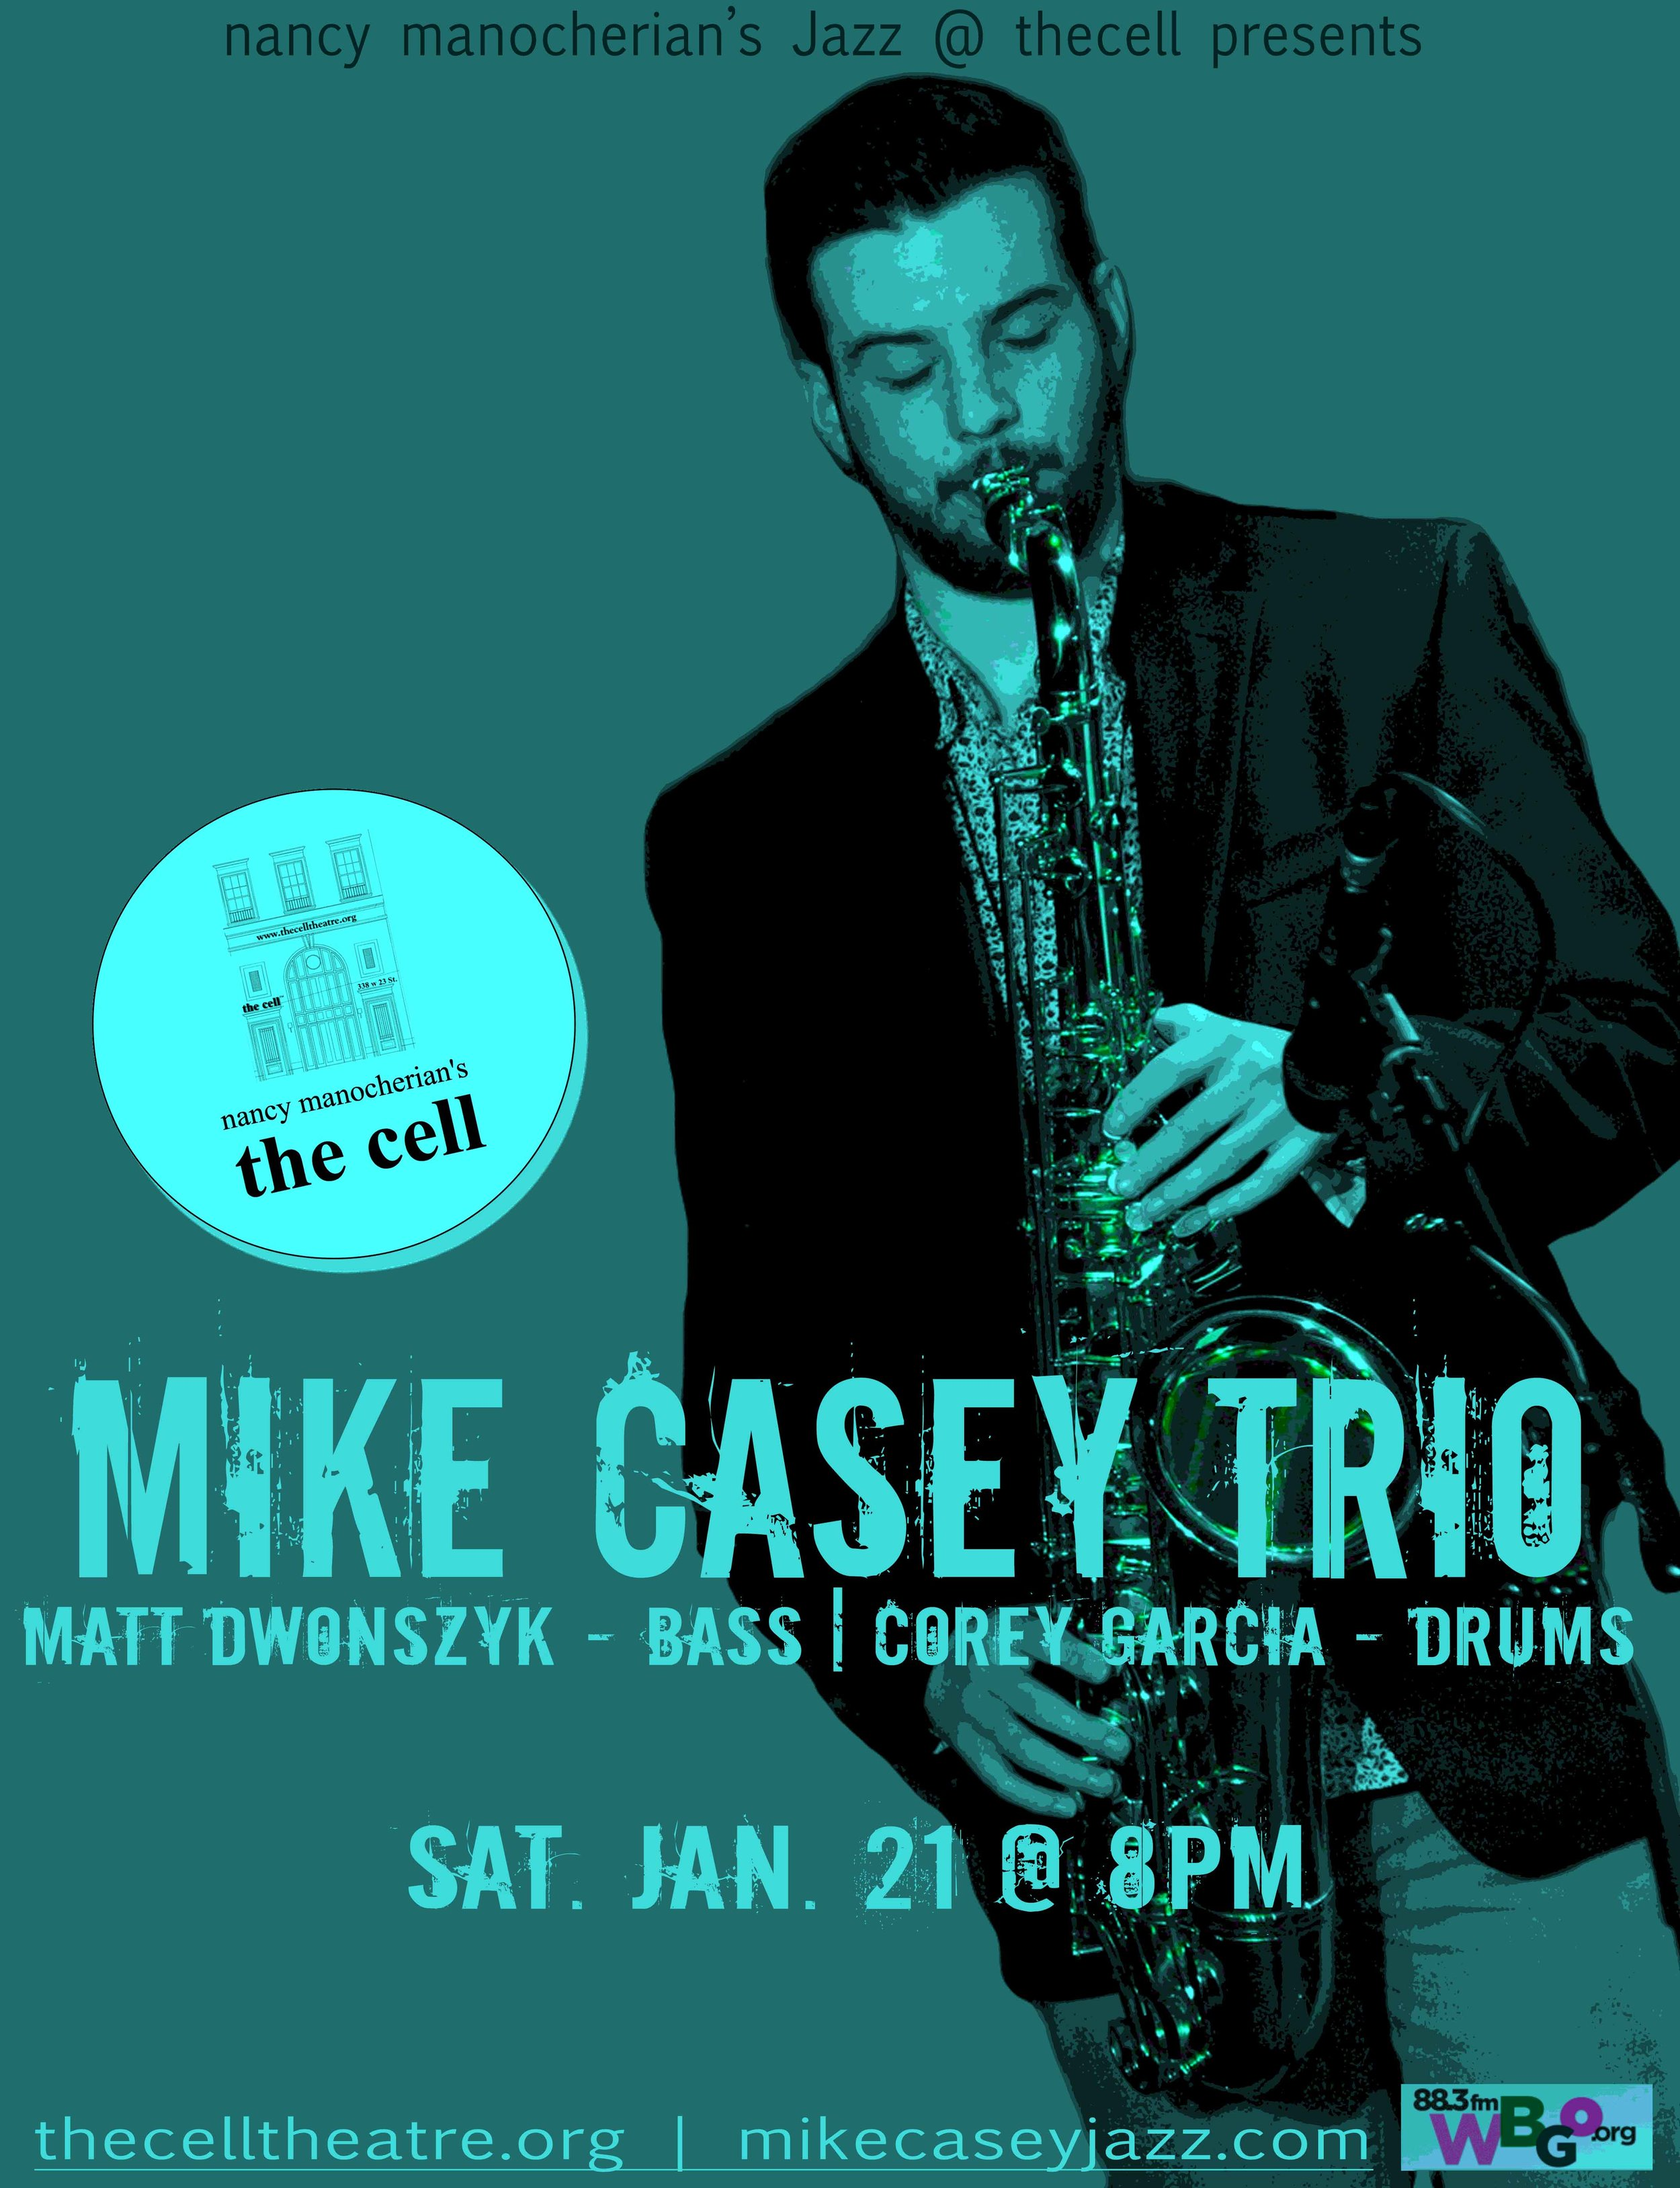 """Saxophonist, songwriter, and teaching artist  Mike Casey  has been a fixture on the Hartford jazz scene and beyond since 2011, when he began attending the acclaimed  Jackie McLean  Institute of Jazz at the University of Harford's Hartt School. In 2015, Mike was one of 24 young jazz composers worldwide chosen by Jason Moran to participate in the prestigious """"Betty Carter Jazz Ahead"""" Program at the Kennedy Center in Washington, DC where he studied with an all-star faculty including  Eric Harland, JD Allen, Eric Revis, Cyrus Chestnut , and  Jason Moran .  After a sold out NYC debut at the Minton's in Harlem in September 2016, Mike went on to accomplish an incredible feat: the crowdfunding campaign for his debut album """"The Sound of Surprise: Live at The Side Door"""" (due for a February 2017 release) reached 111% funded in under 30 days. His resume includes appearances with  Charles Tolliver, DJ Logic, Brandee Younger, Zaccai Curtis, Tarus Mateen  and  Marc Cary , whose project  """"The Harlem Sessions""""  features Mike as an original member.  Mike has enchanted audiences young & old alike, performing a unique blend of upbeat, accessible, original music and exciting arrangements of jazz standards with a mature lyricism and a sound that commands the attention of the audience."""